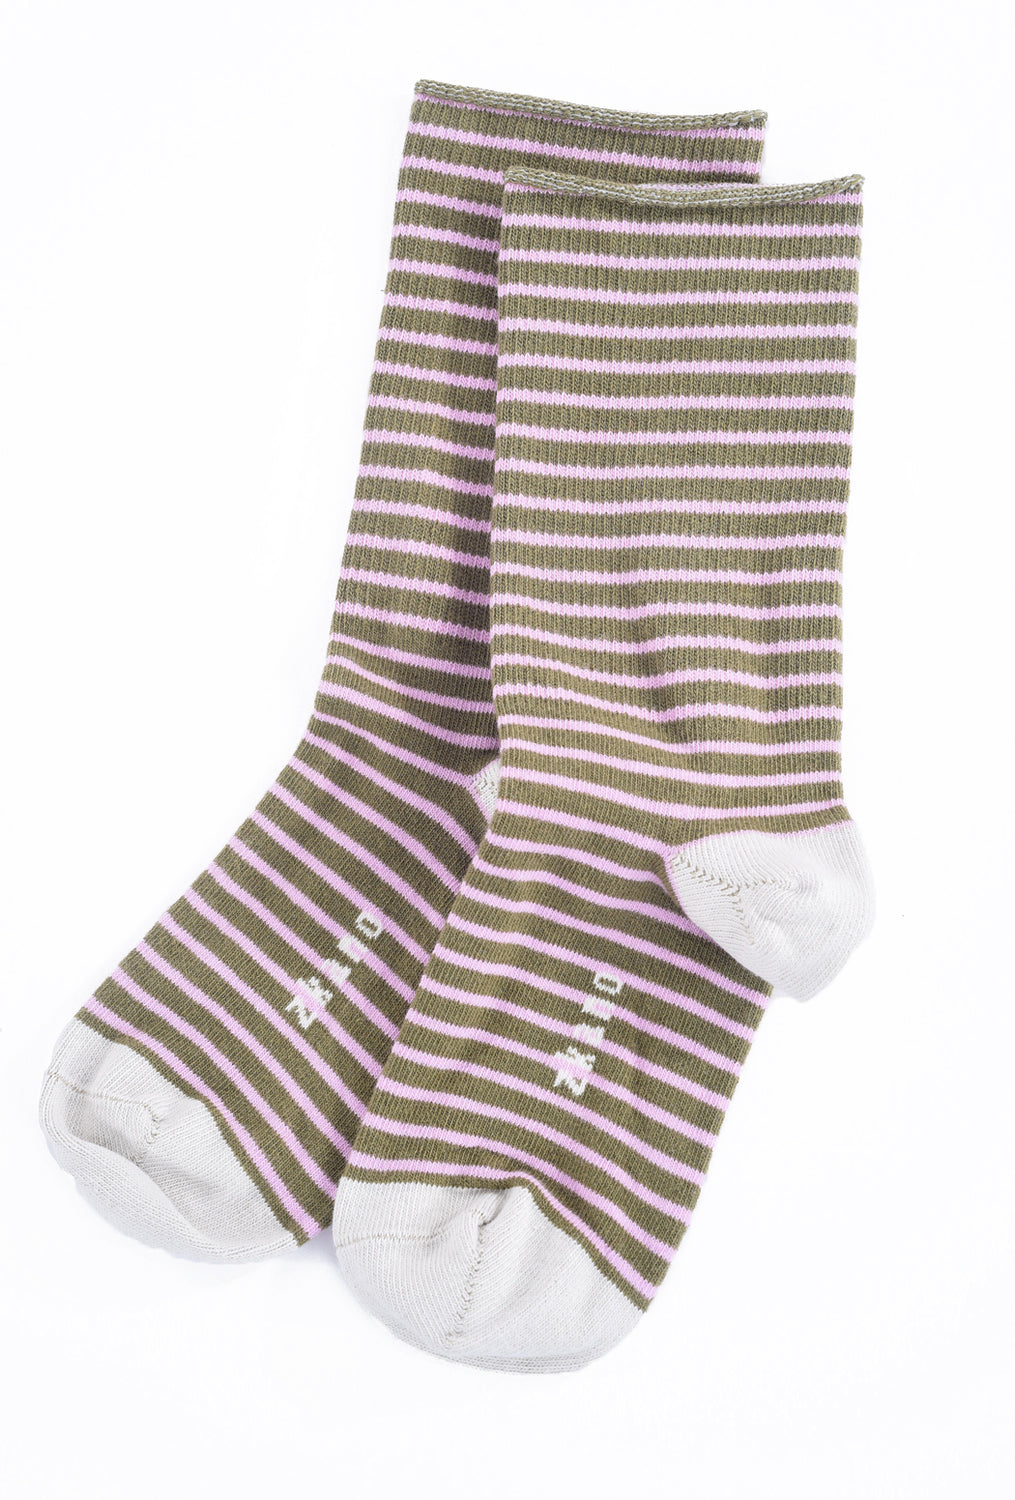 Little River Sock Mill Rose Stripe Slouch Socks, Moss